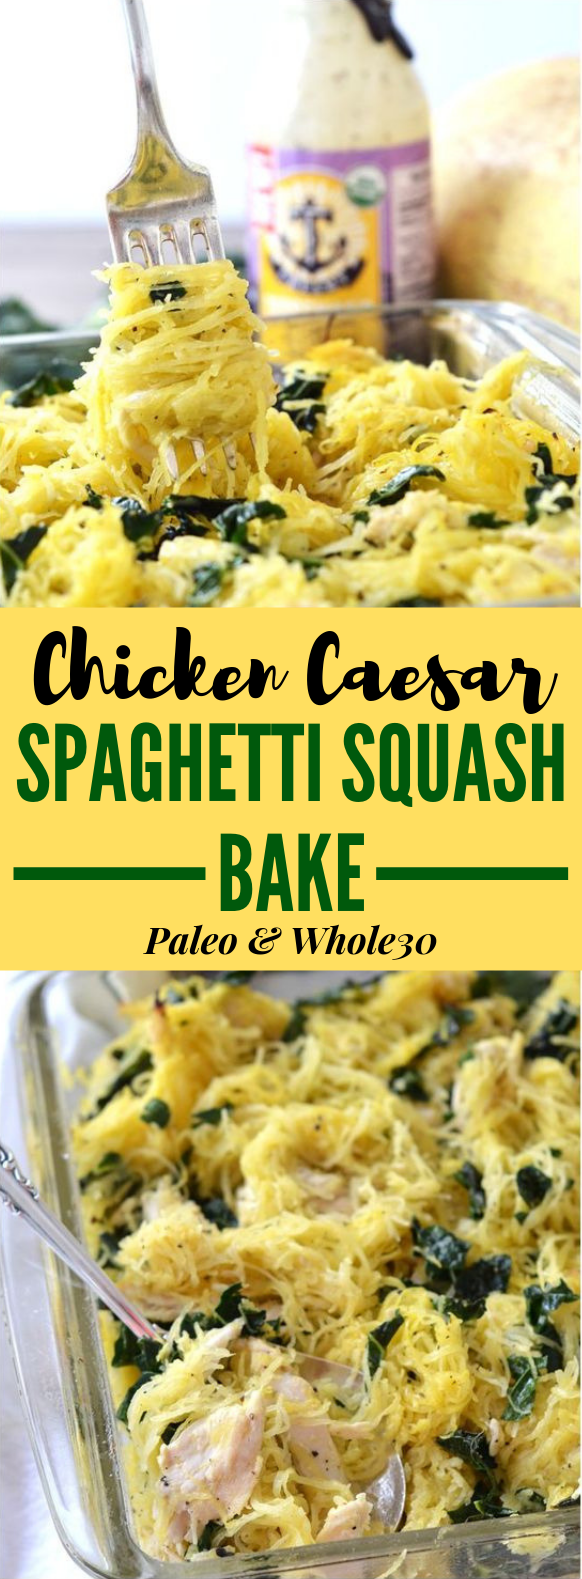 CHICKEN CAESAR SPAGHETTI SQUASH BAKE #Whole30 #Paleo